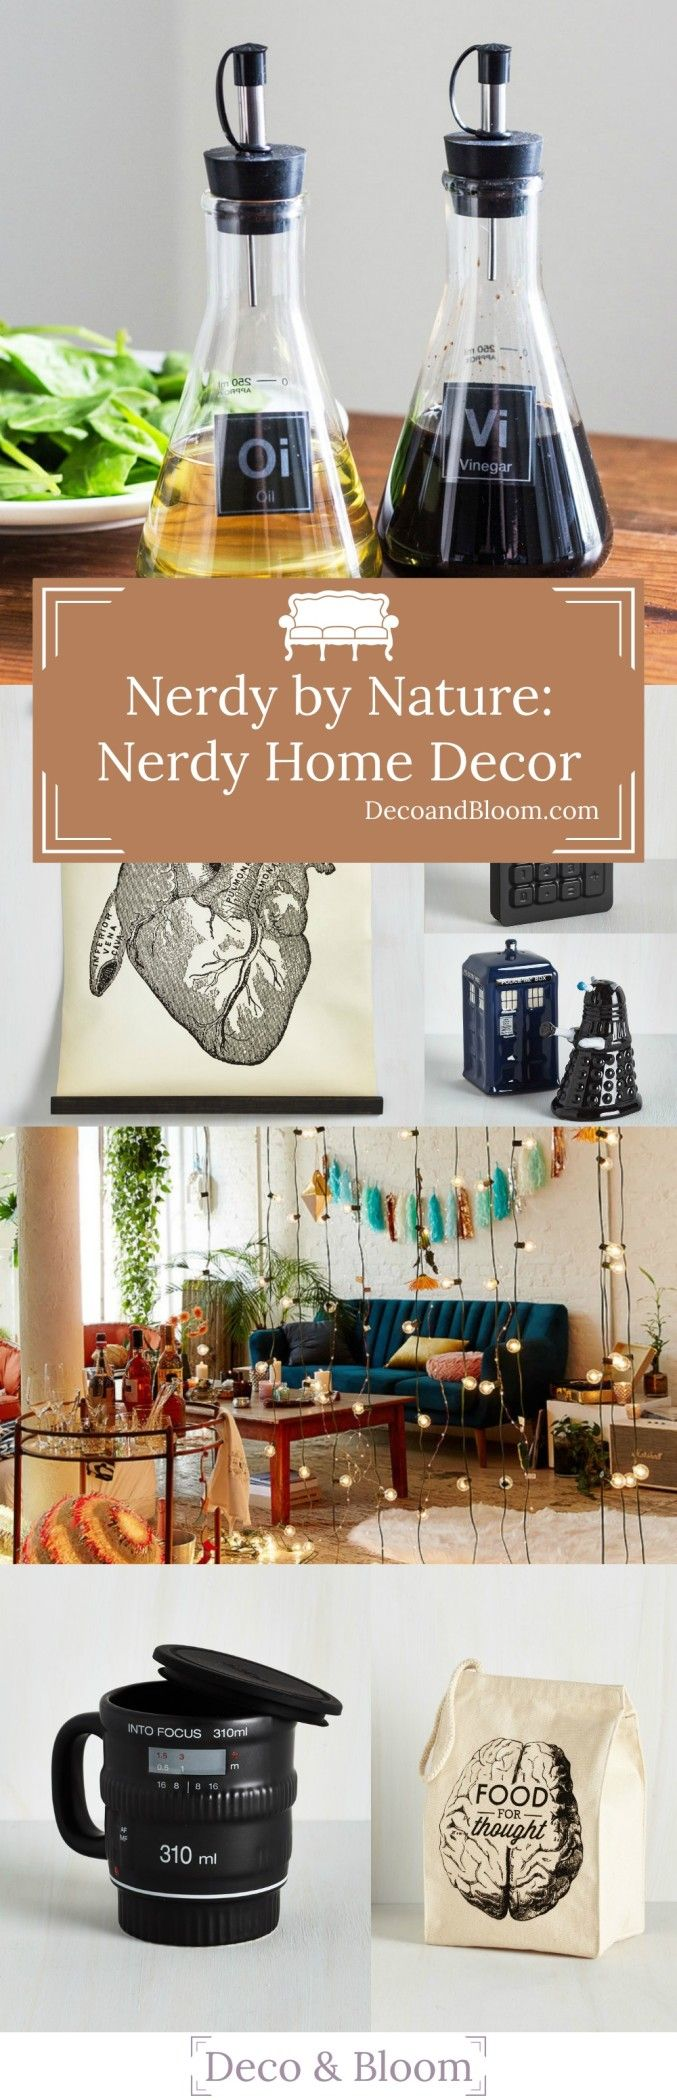 Lovely Nerdy By Nature: Nerdy Home Decor From The Home Decor Discovery Community  Of Www.DecoandBloom.com